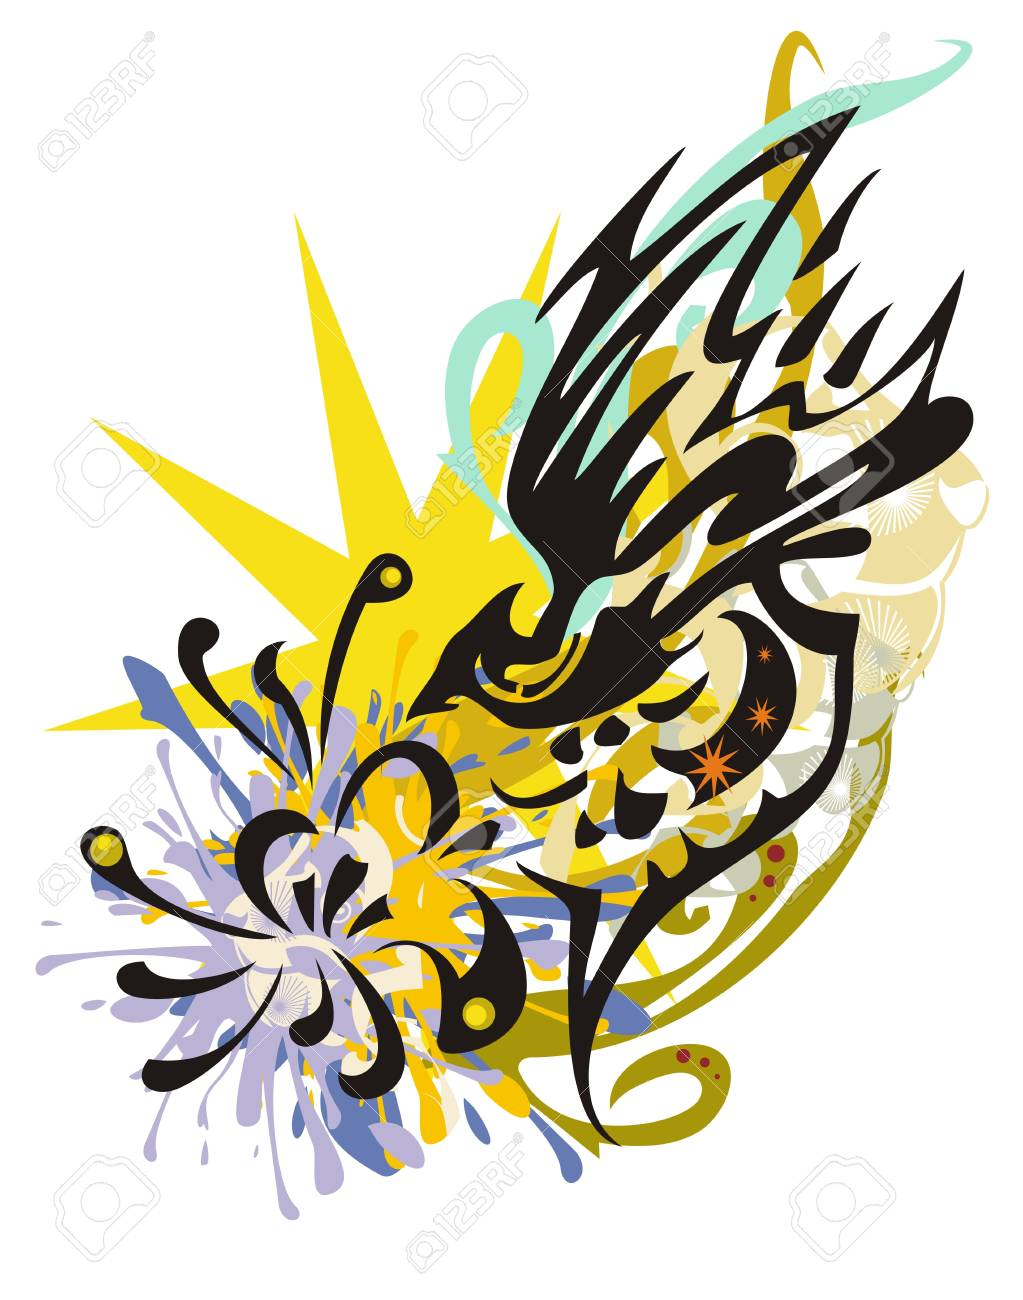 Grunge Abstract Fantasy Flying Bird Splashes With A Flower Tribal